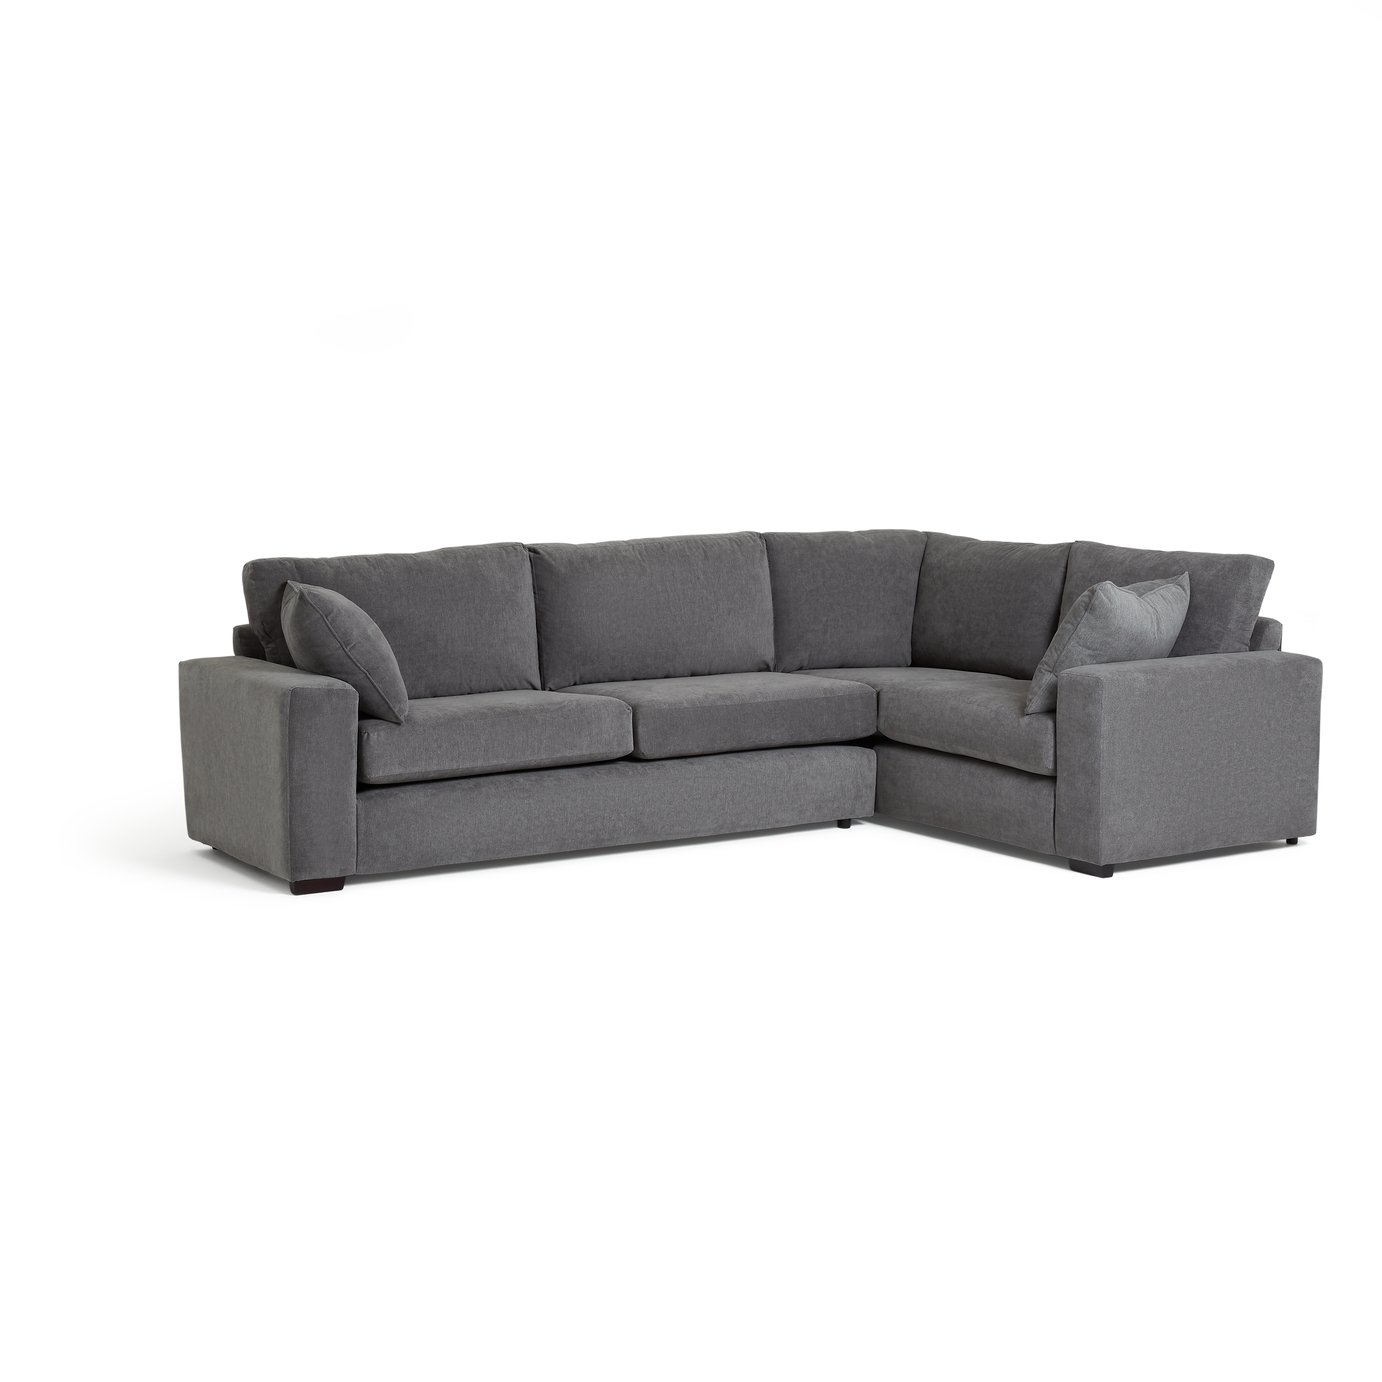 Argos Home Eton Right Corner Fabric Sofa - Charcoal